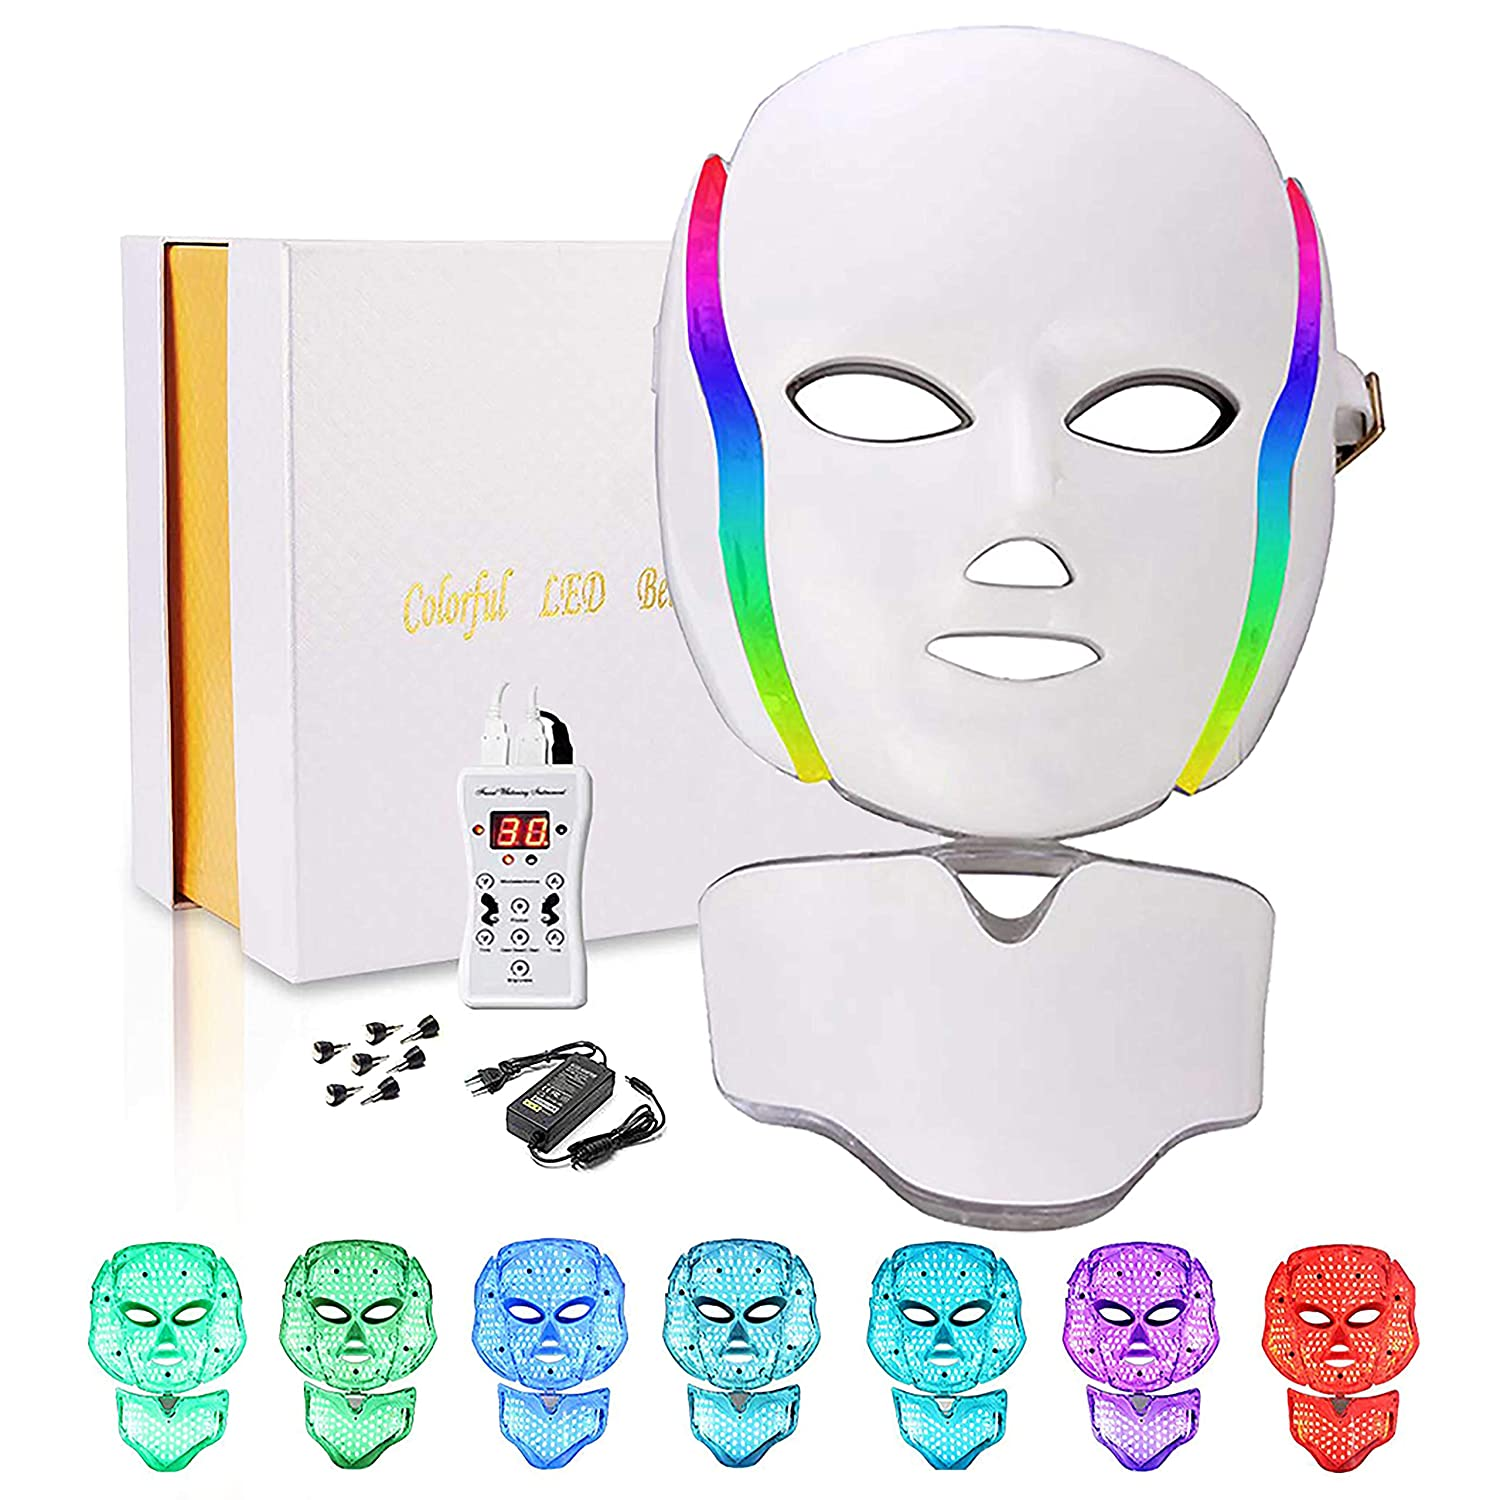 Led Face Mask, 7 Colors Led Light Photon Therapy Mask Beauty Machine Proactive Facial Slimming (white)